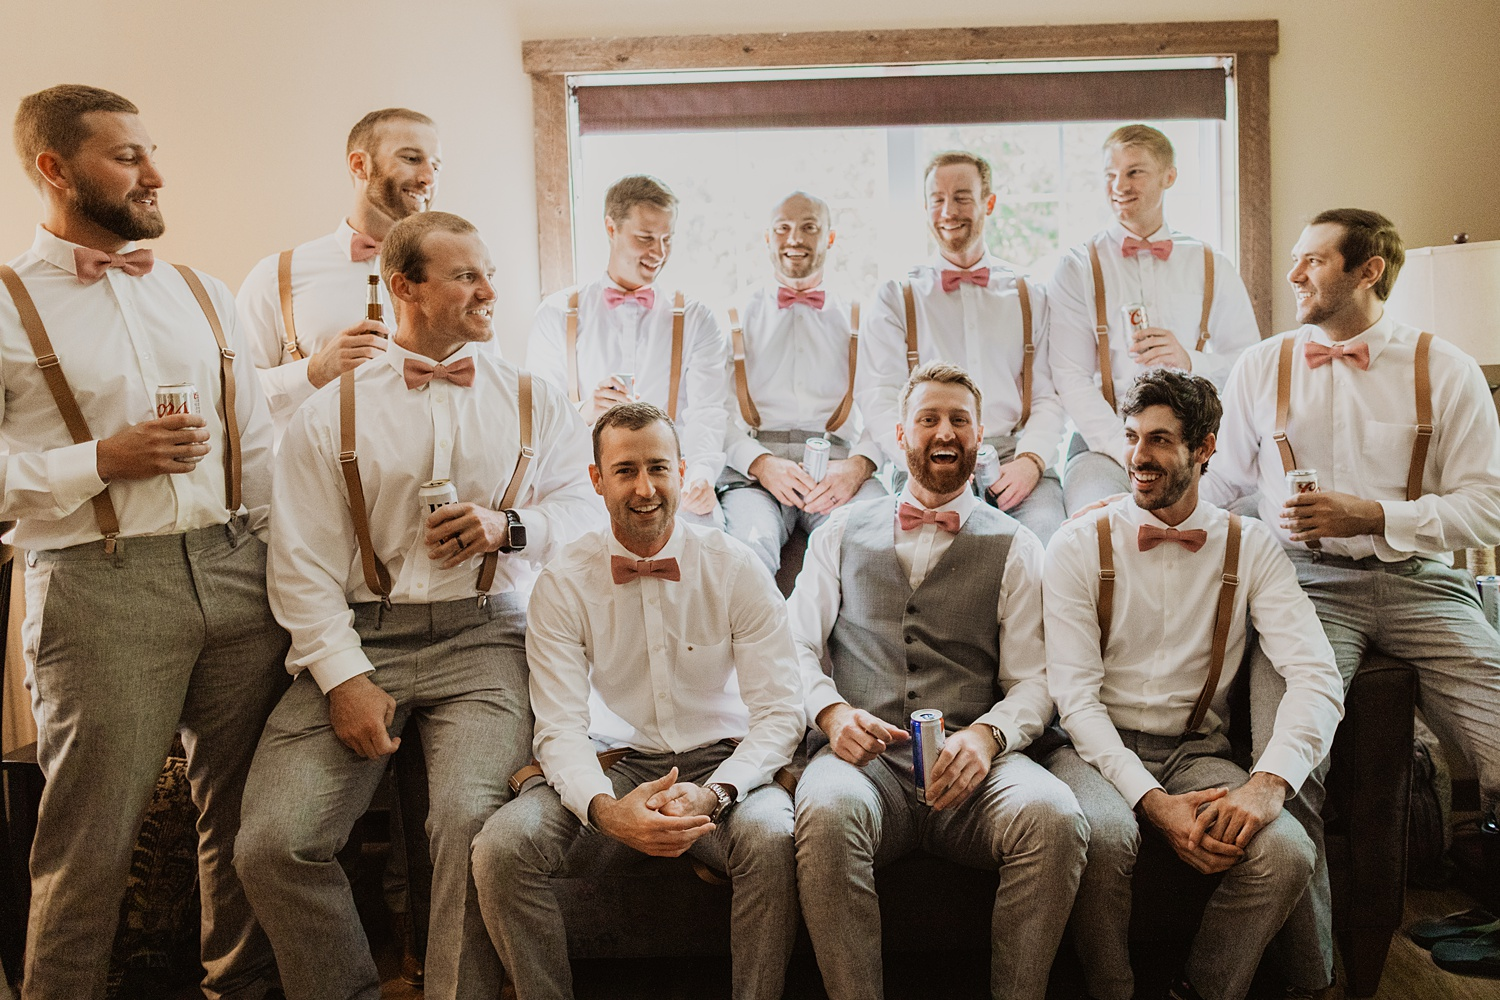 South Dakota Wedding | Groomsmen Suits | Groom Getting Ready | Cassie Madden Photography